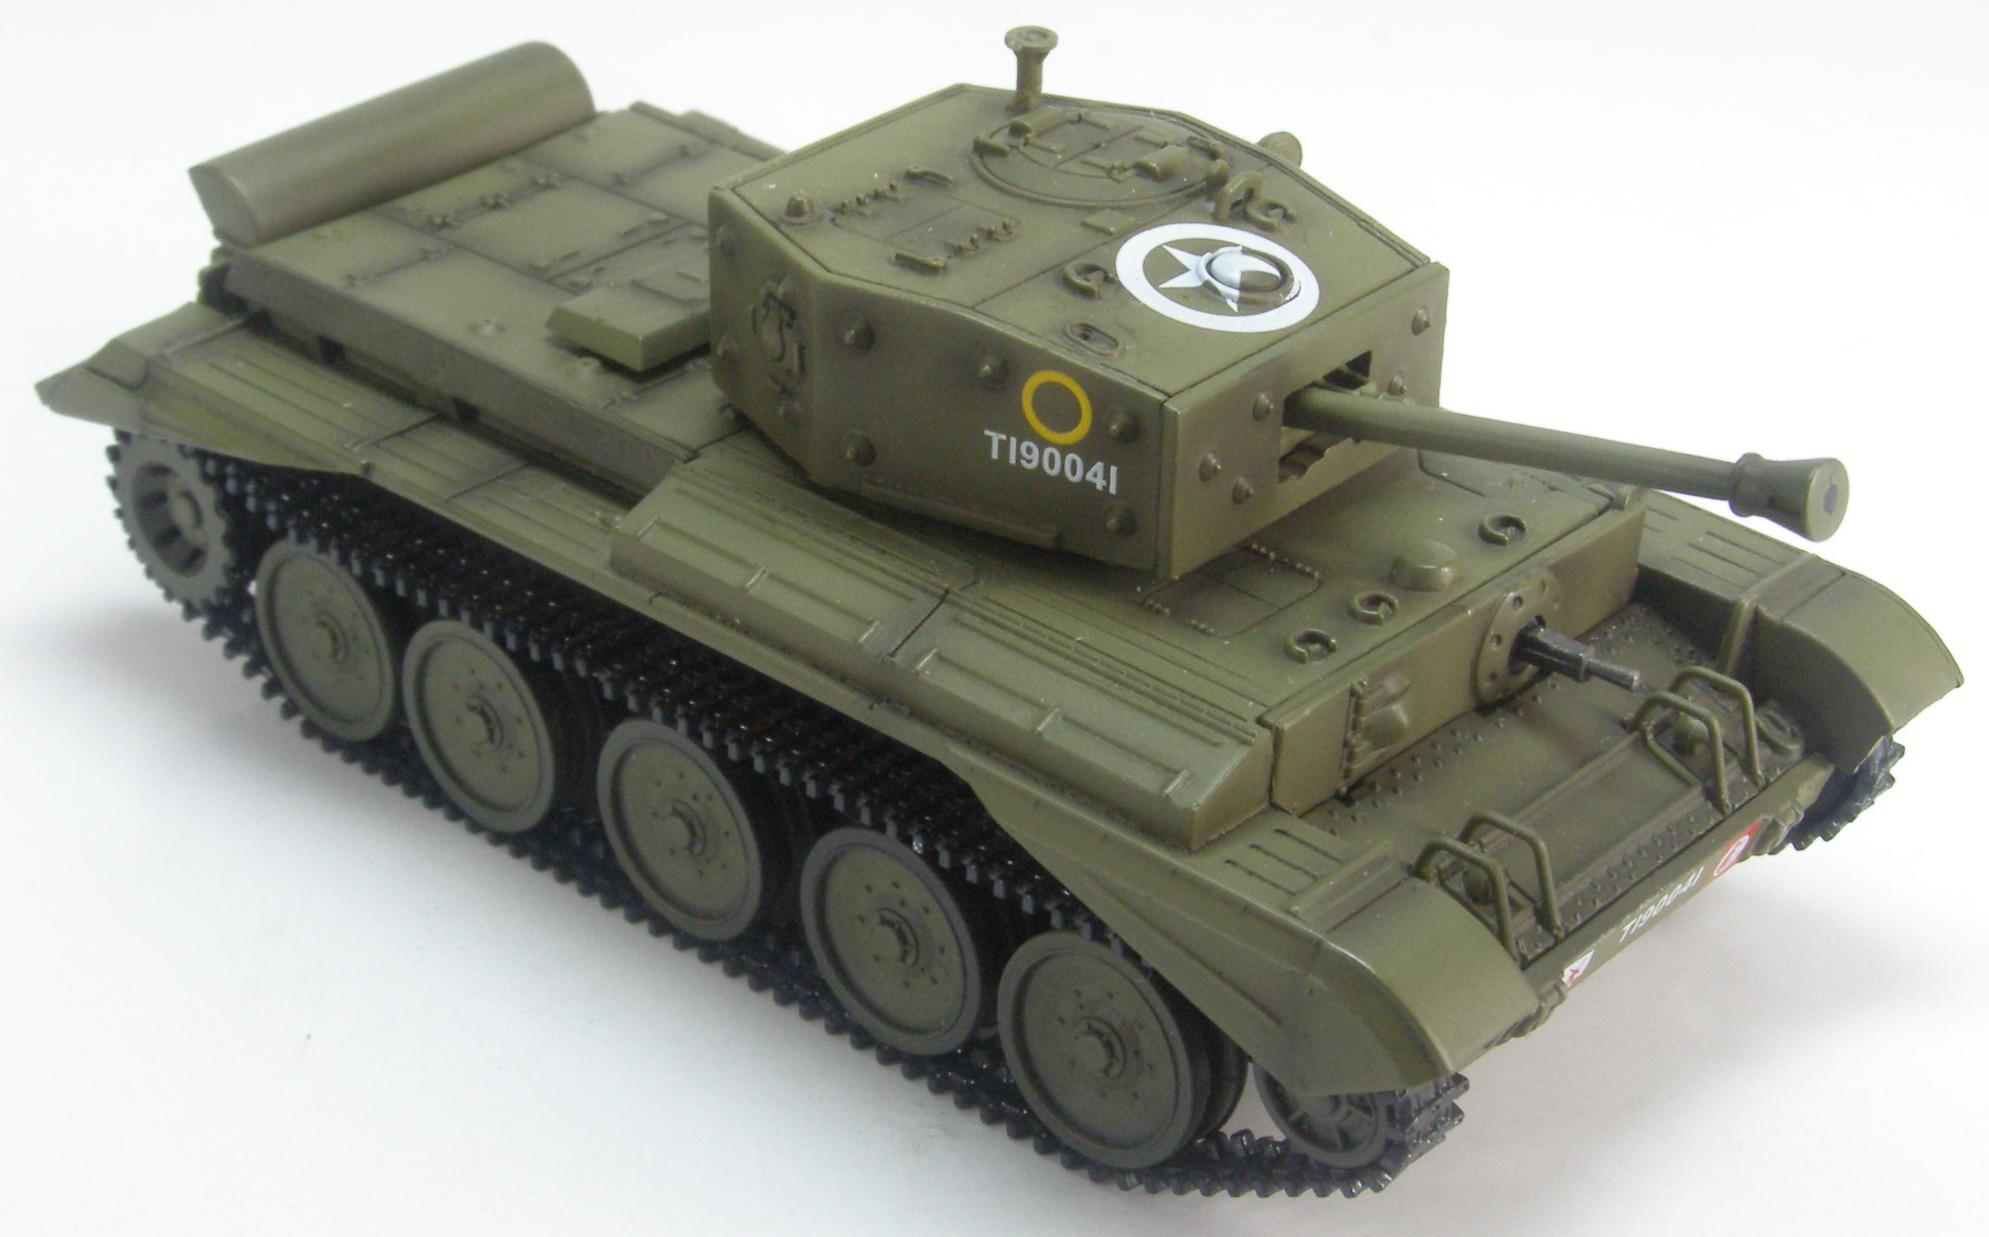 Hg3101 1 72 Scale Hobby Master Cromwell Mk Iv 5th Royal